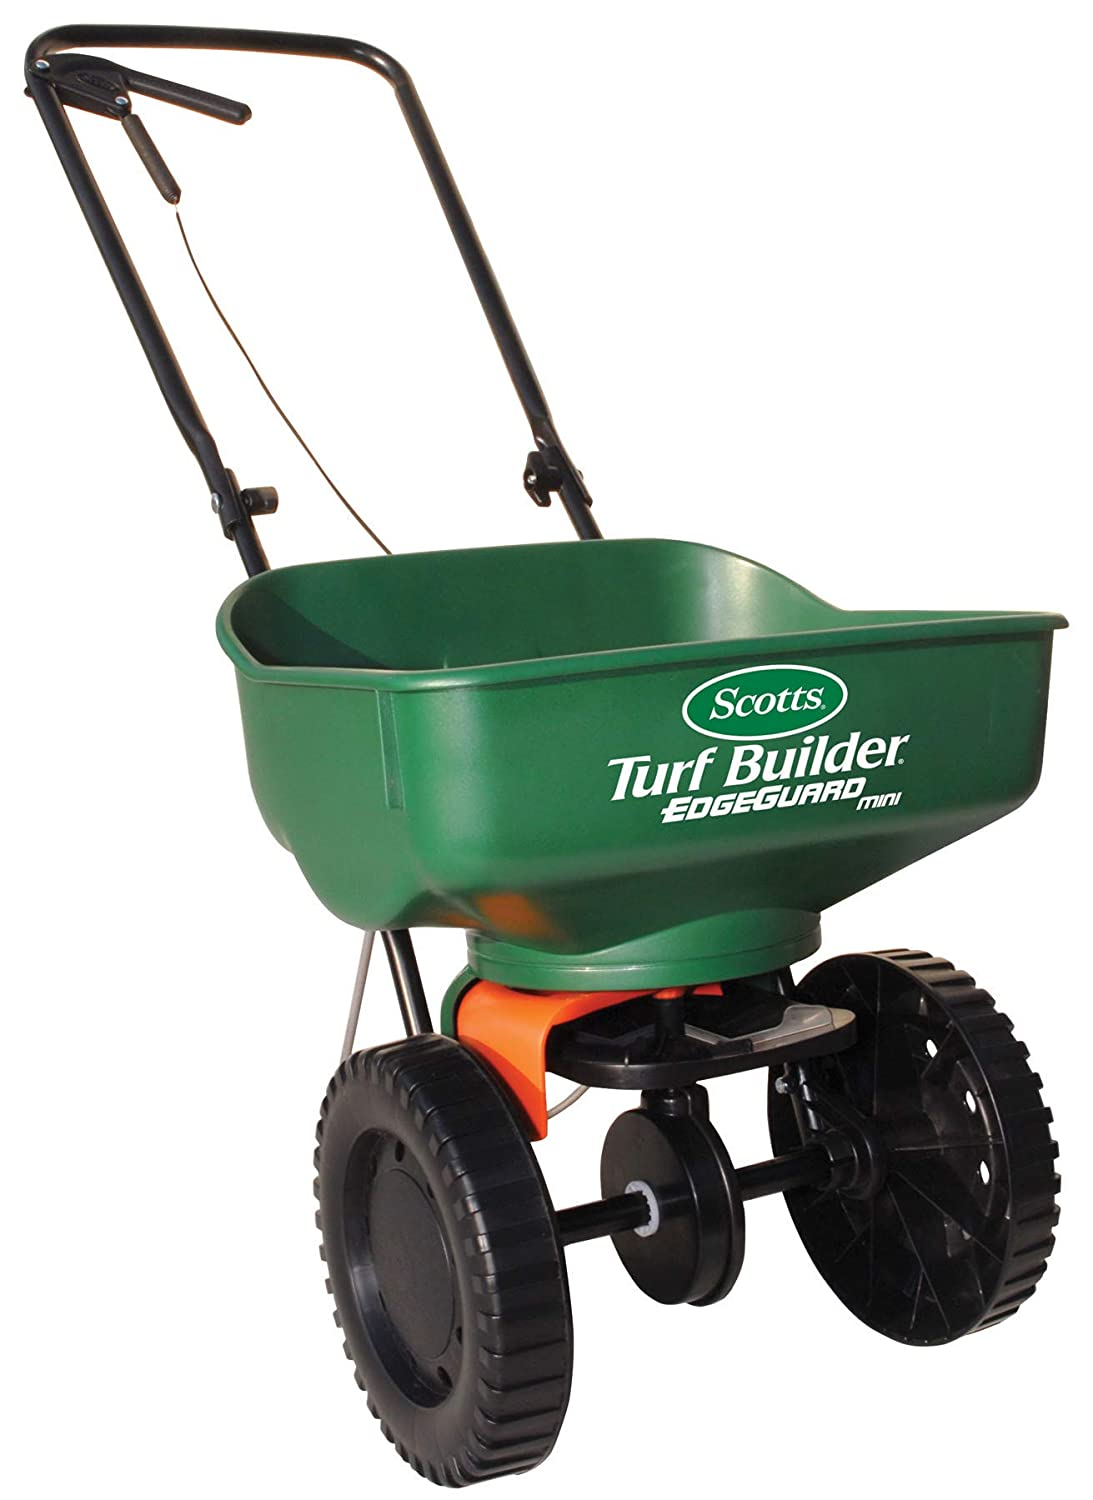 Scotts Turf Builder EdgeGuard Mini Broadcast Spreader – Spreads Grass Seed, Fertilizer and Ice Melt – Holds up to 5,000 sq. ft. of Scotts Grass Seed or Fertilizer Products